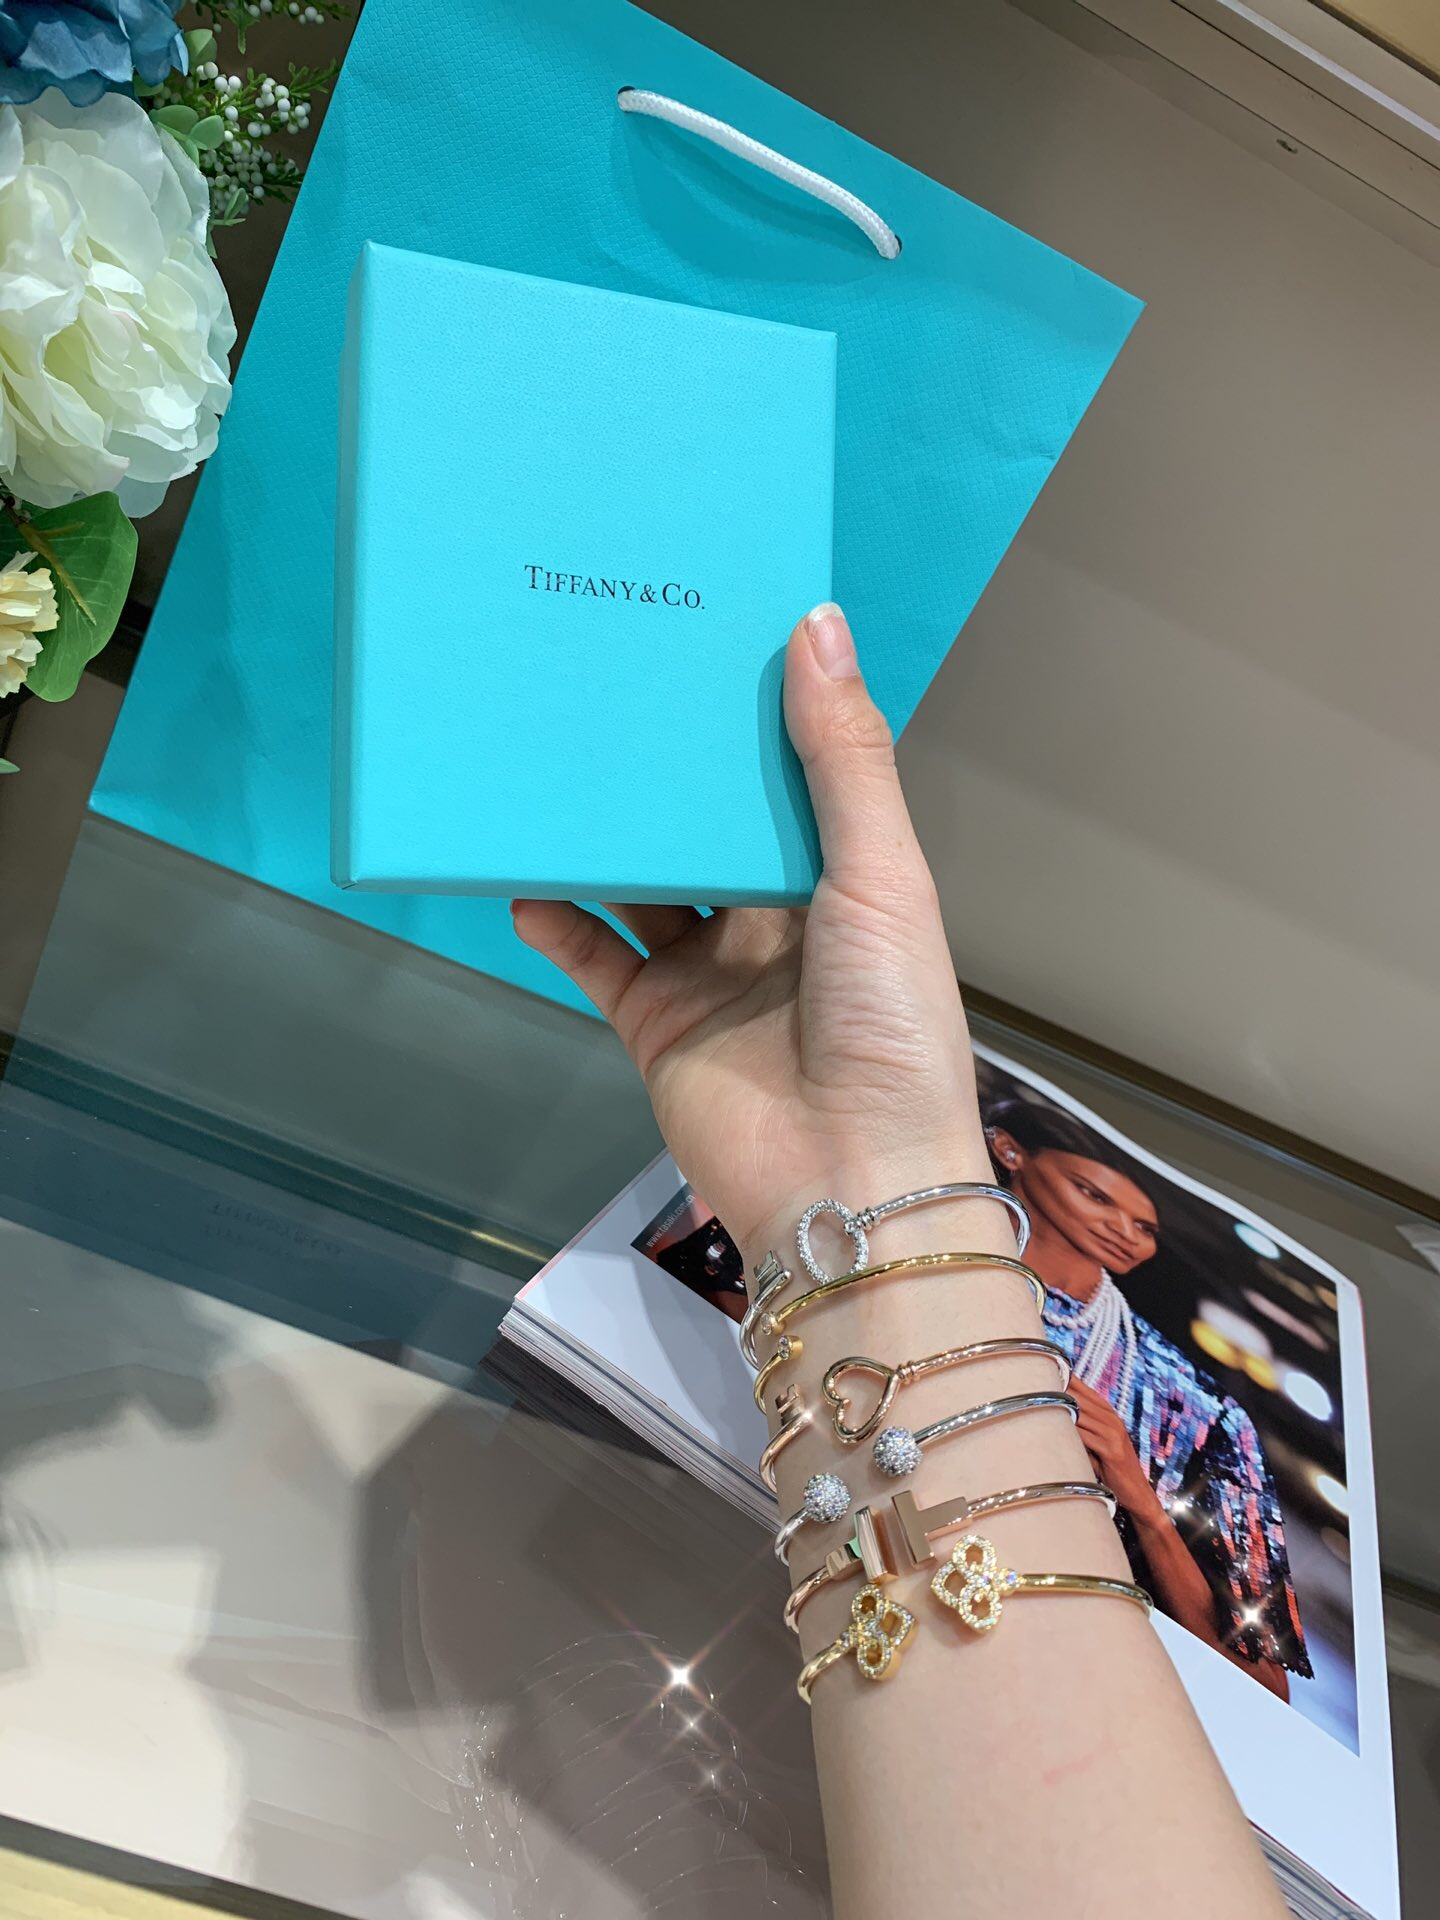 Create your own bracelet stack with delicate Tiffany bracelets